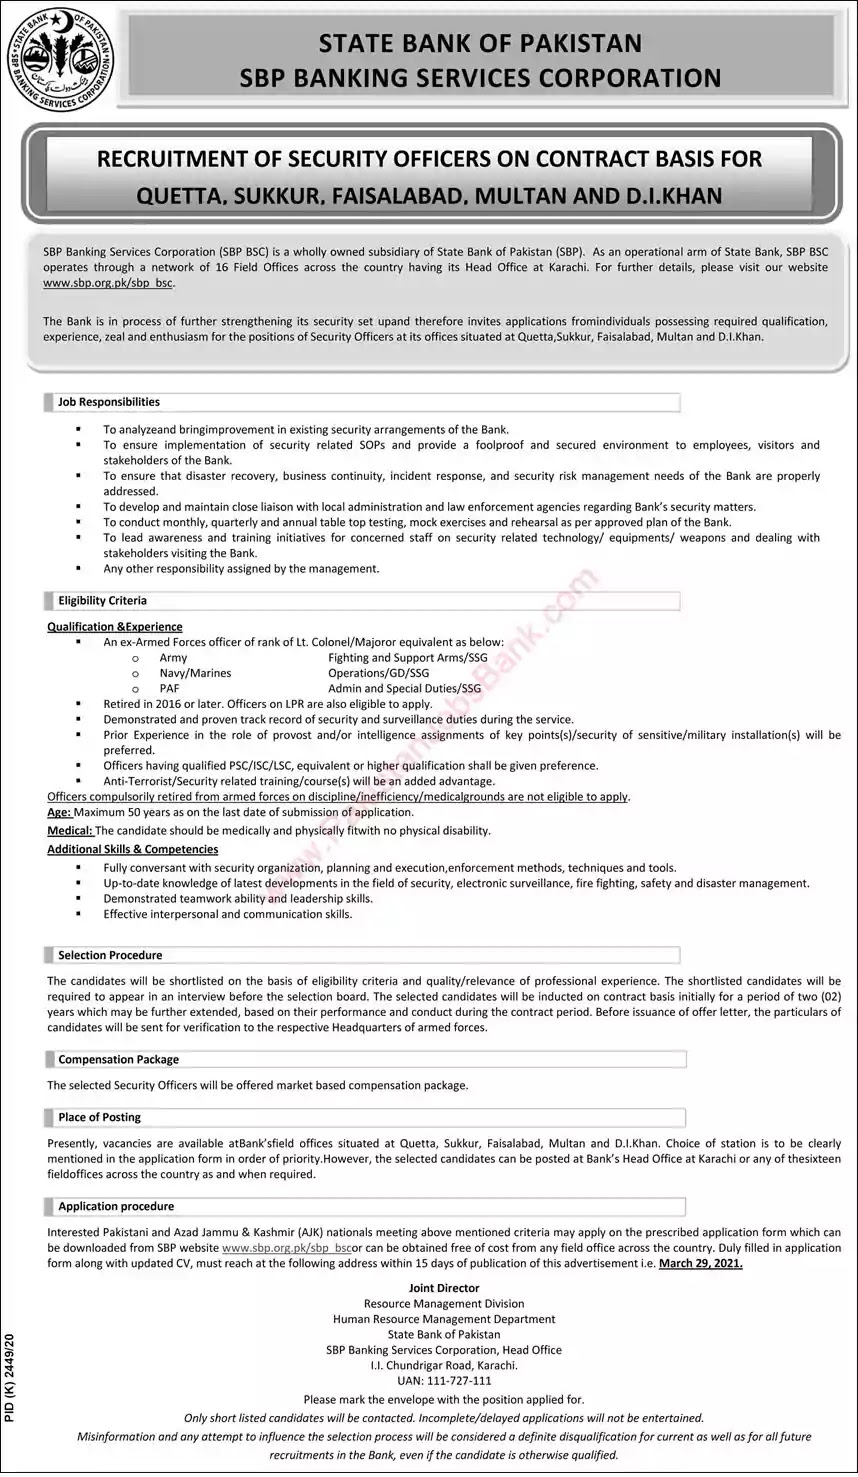 Latest Jobs in Pakistan State Bank of Pakistan Jobs 2021 | Download Application Form